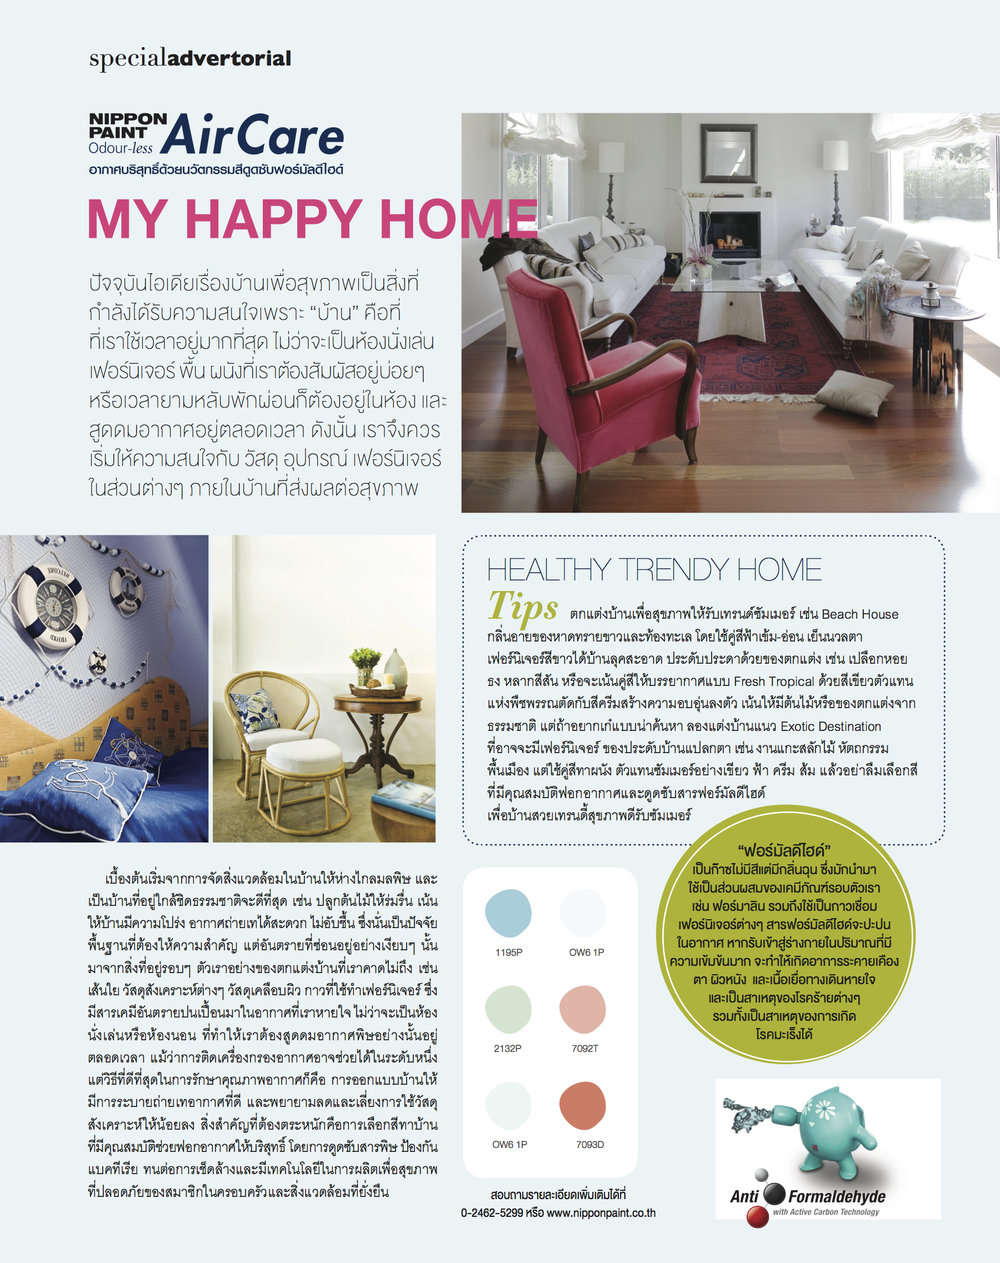 nippon paint air care - health trendy home